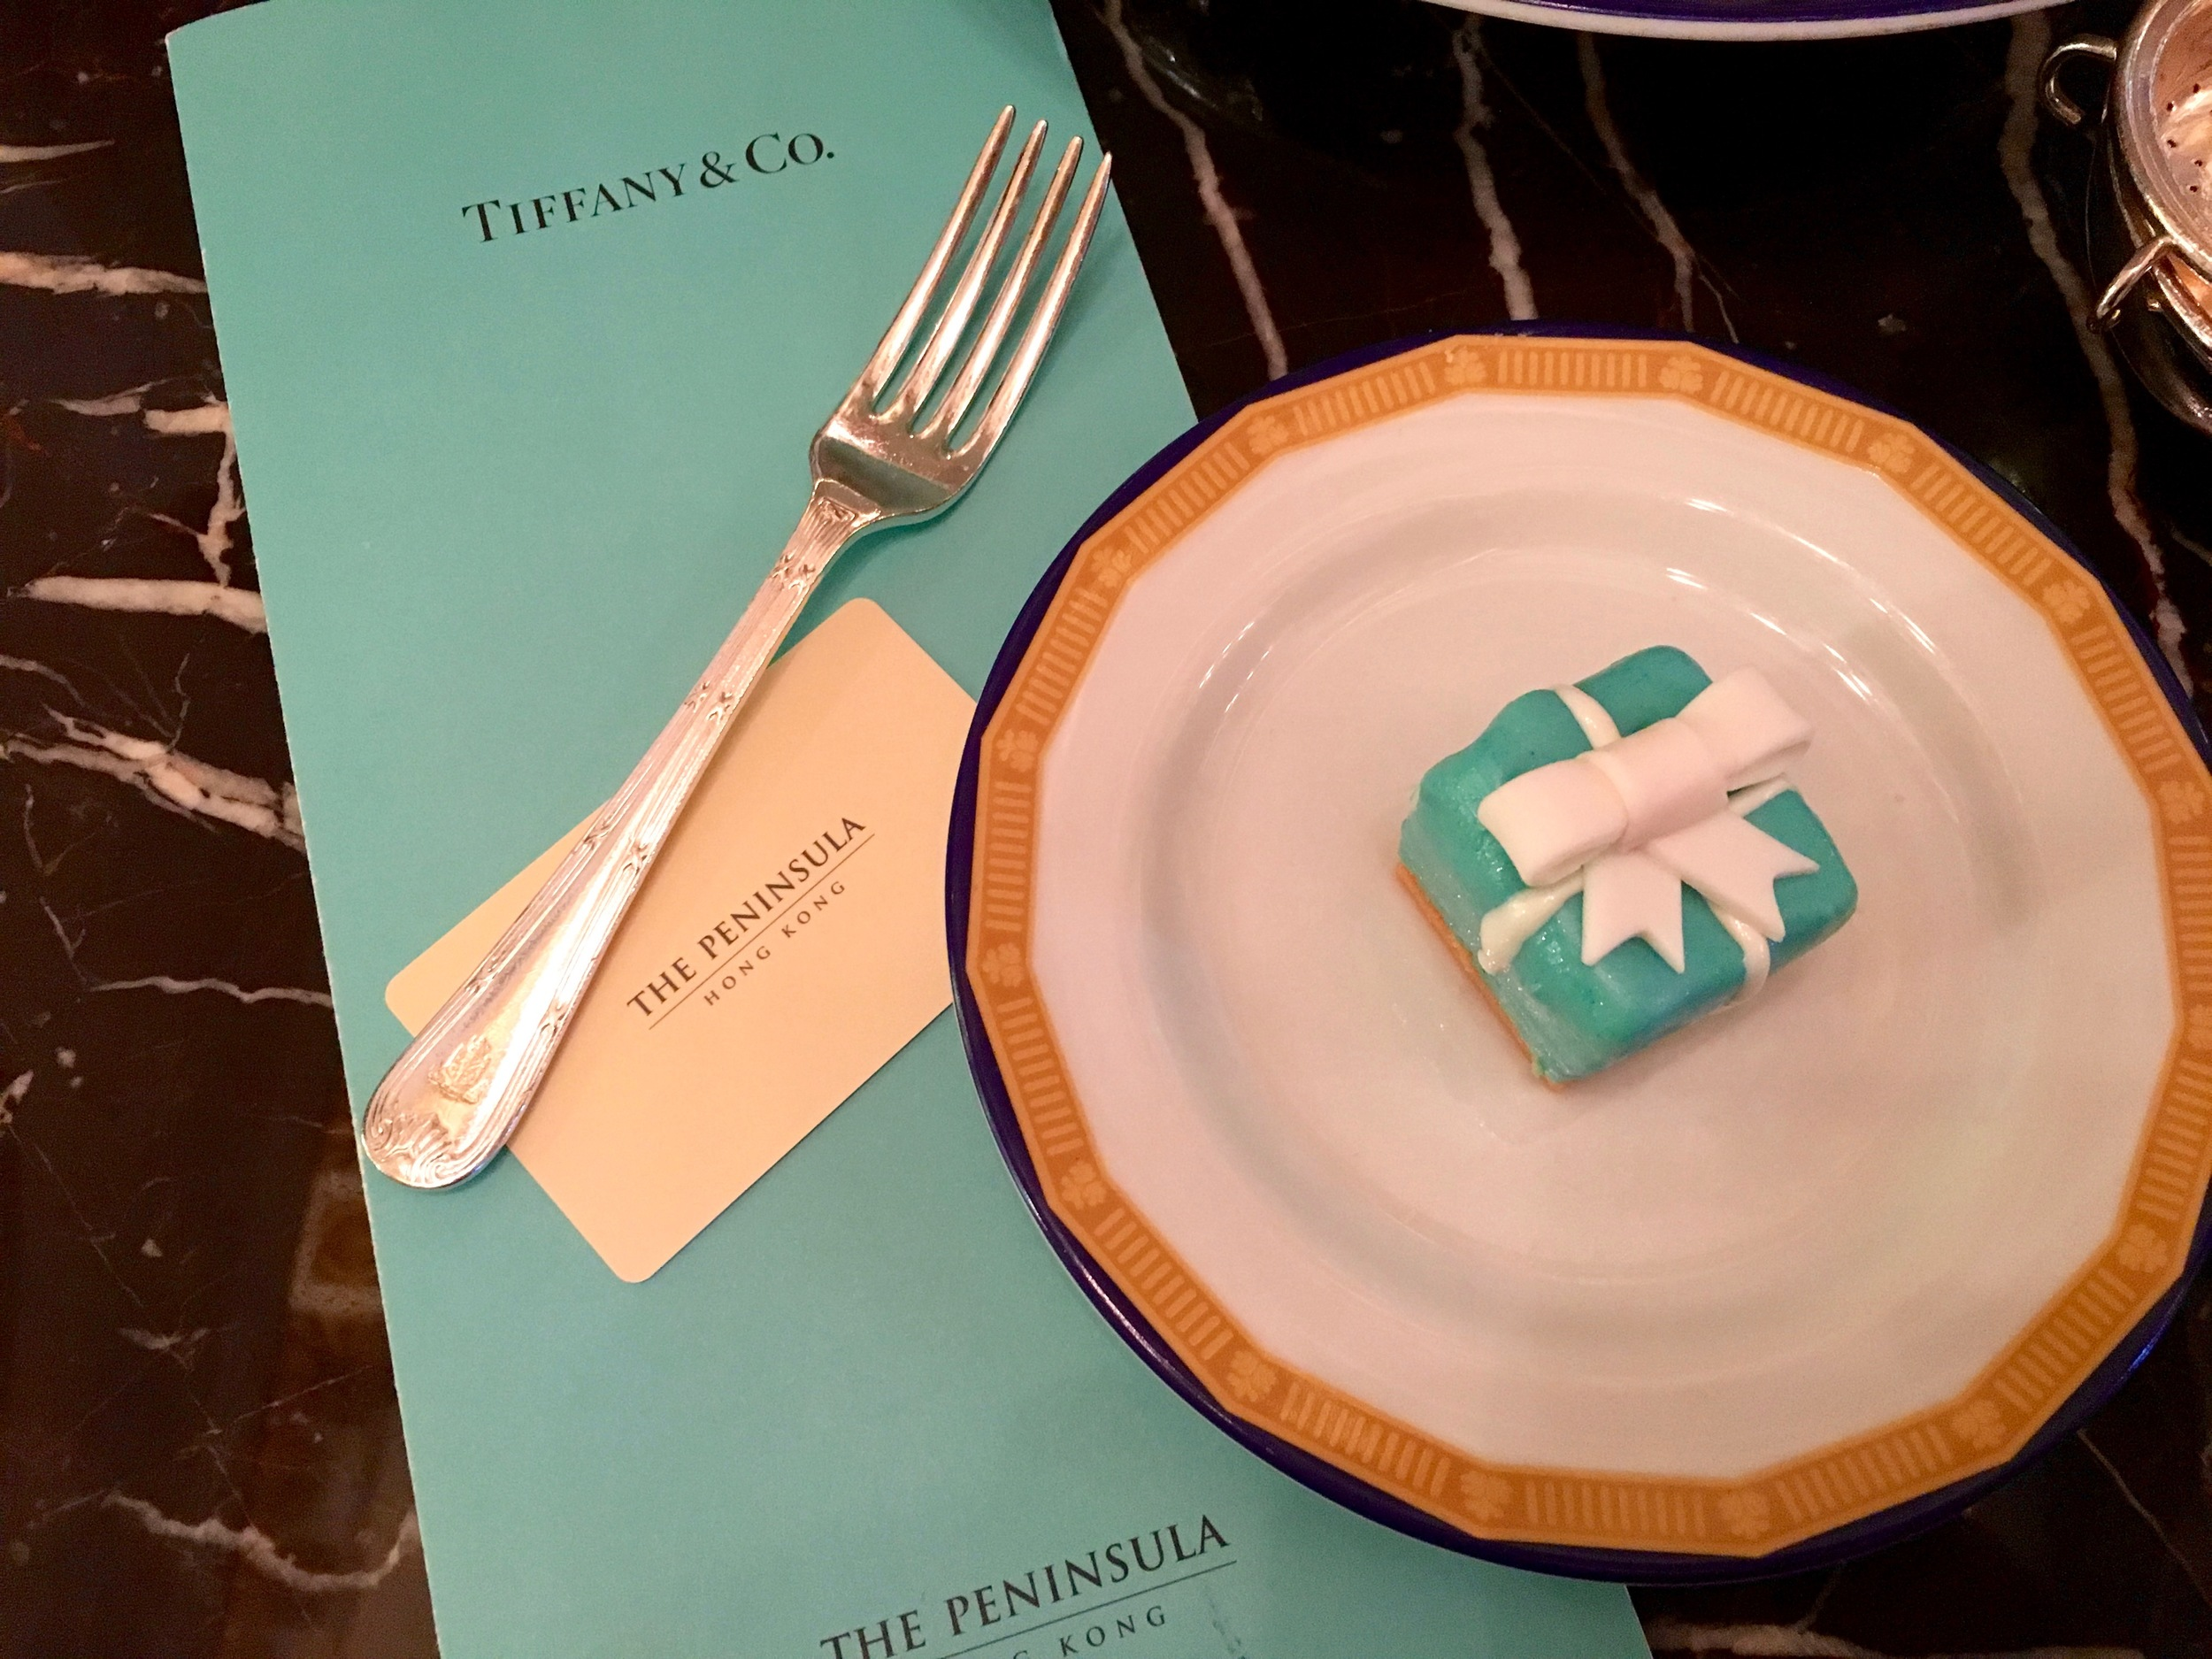 Limited time Tiffany & Co edition high tea...only at the Pen!